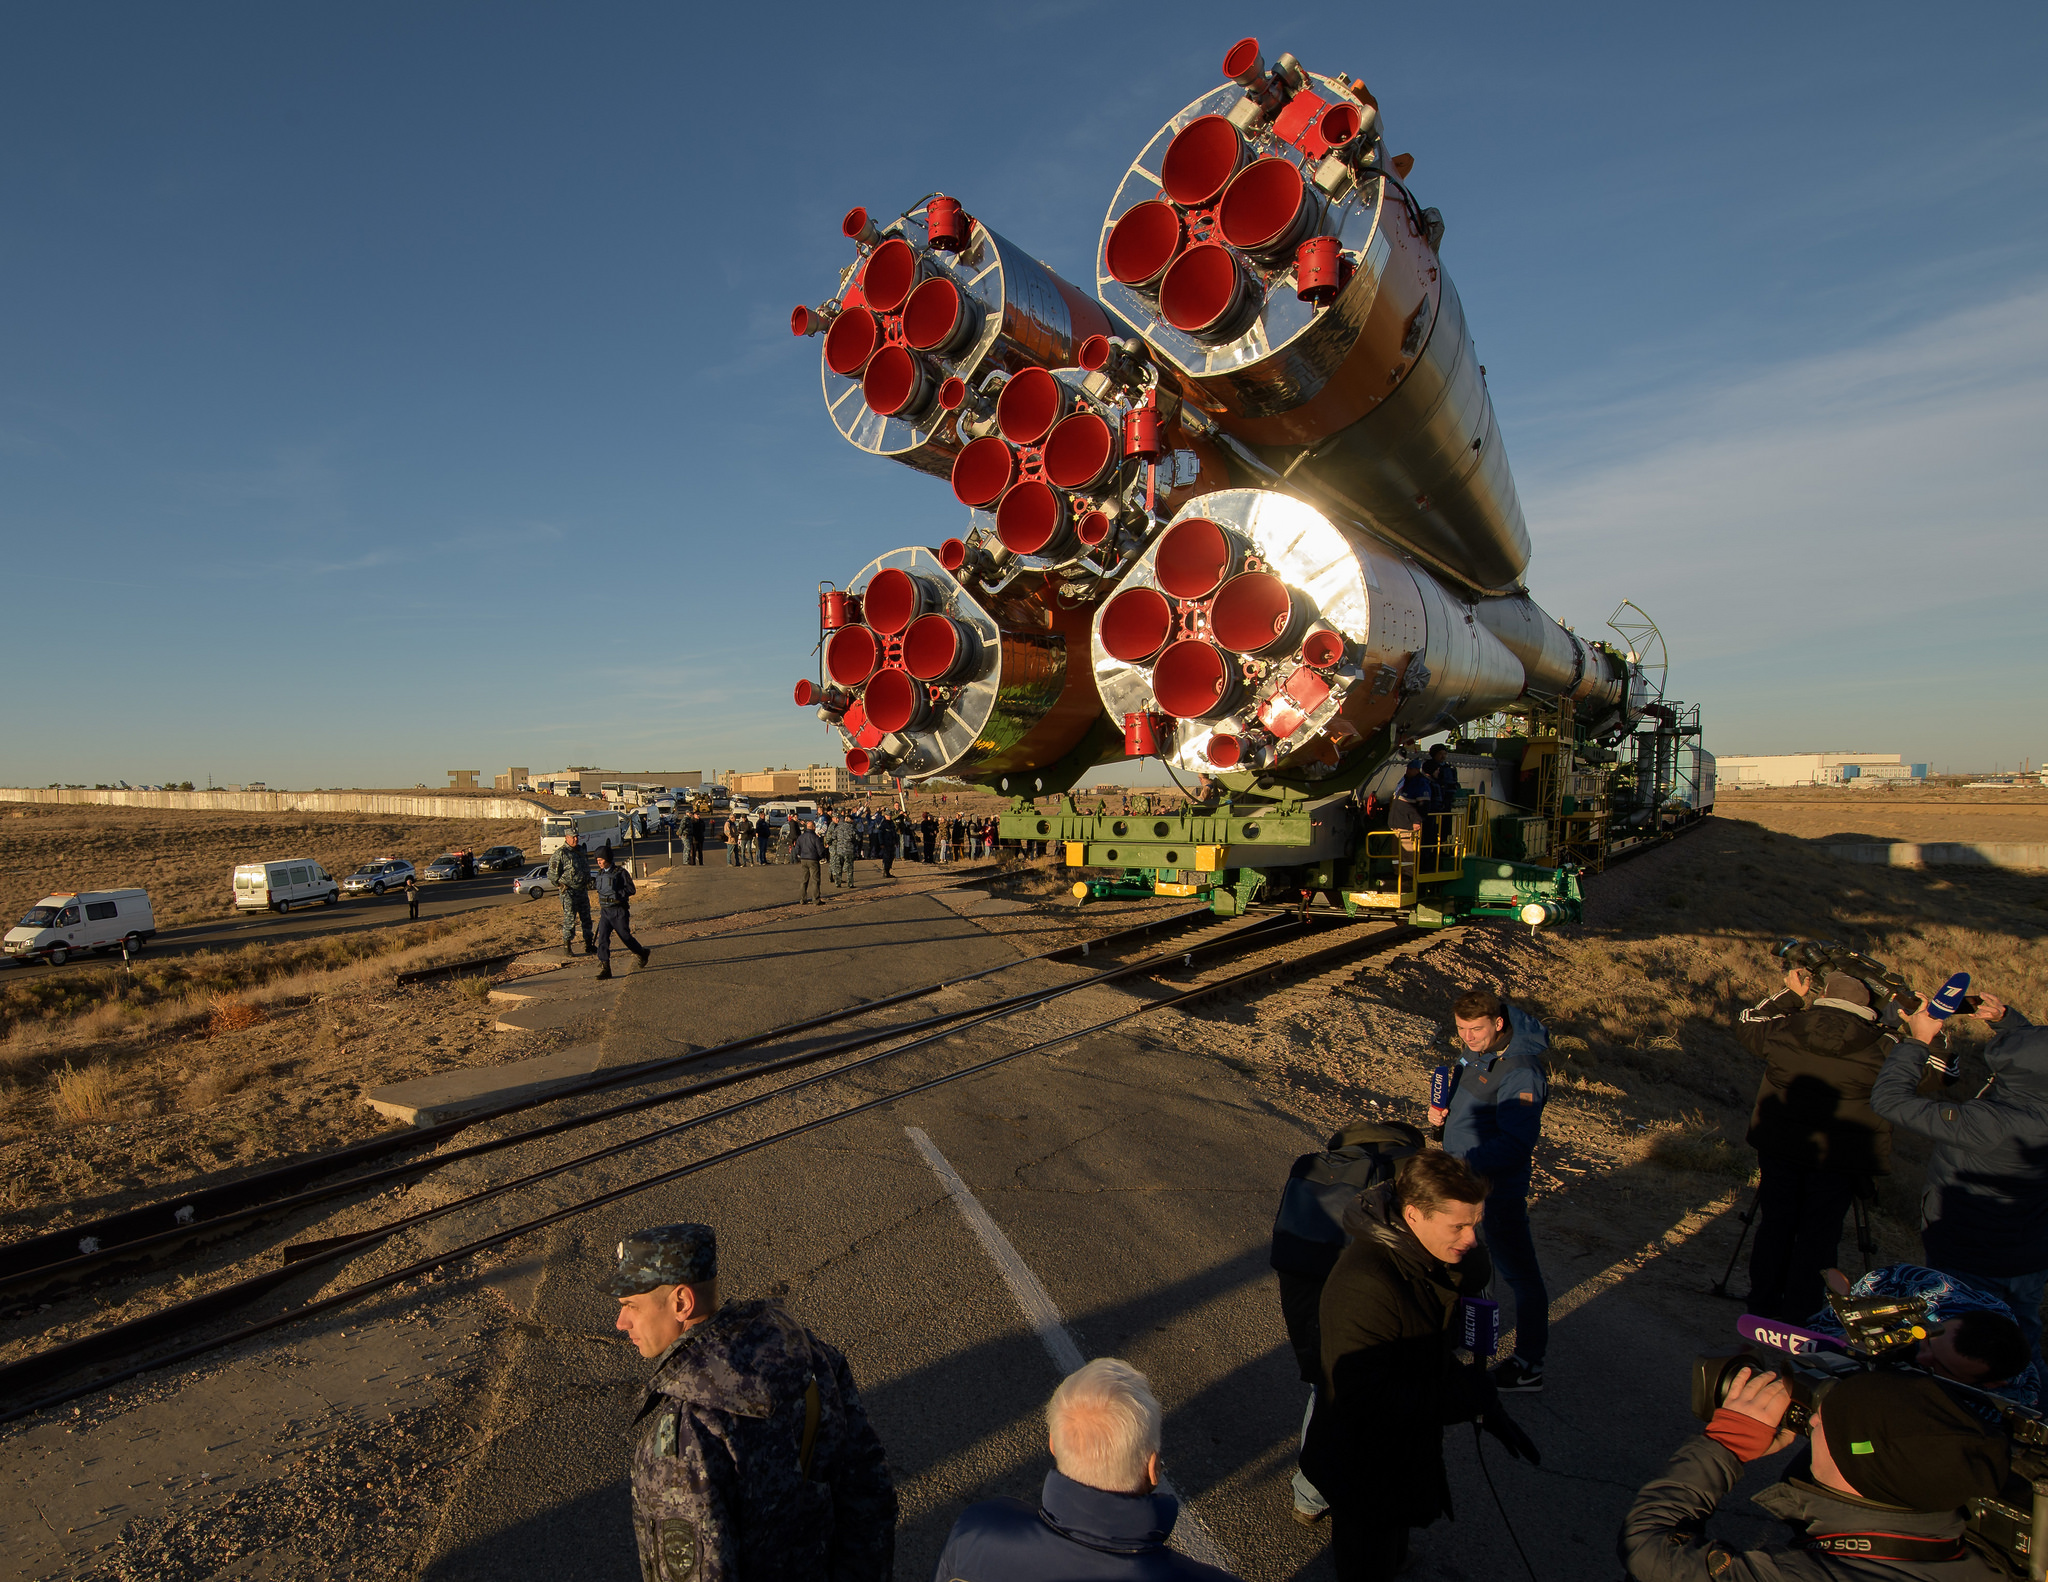 Soyuz Rolls to the Pad for Next Launch to the Space Station